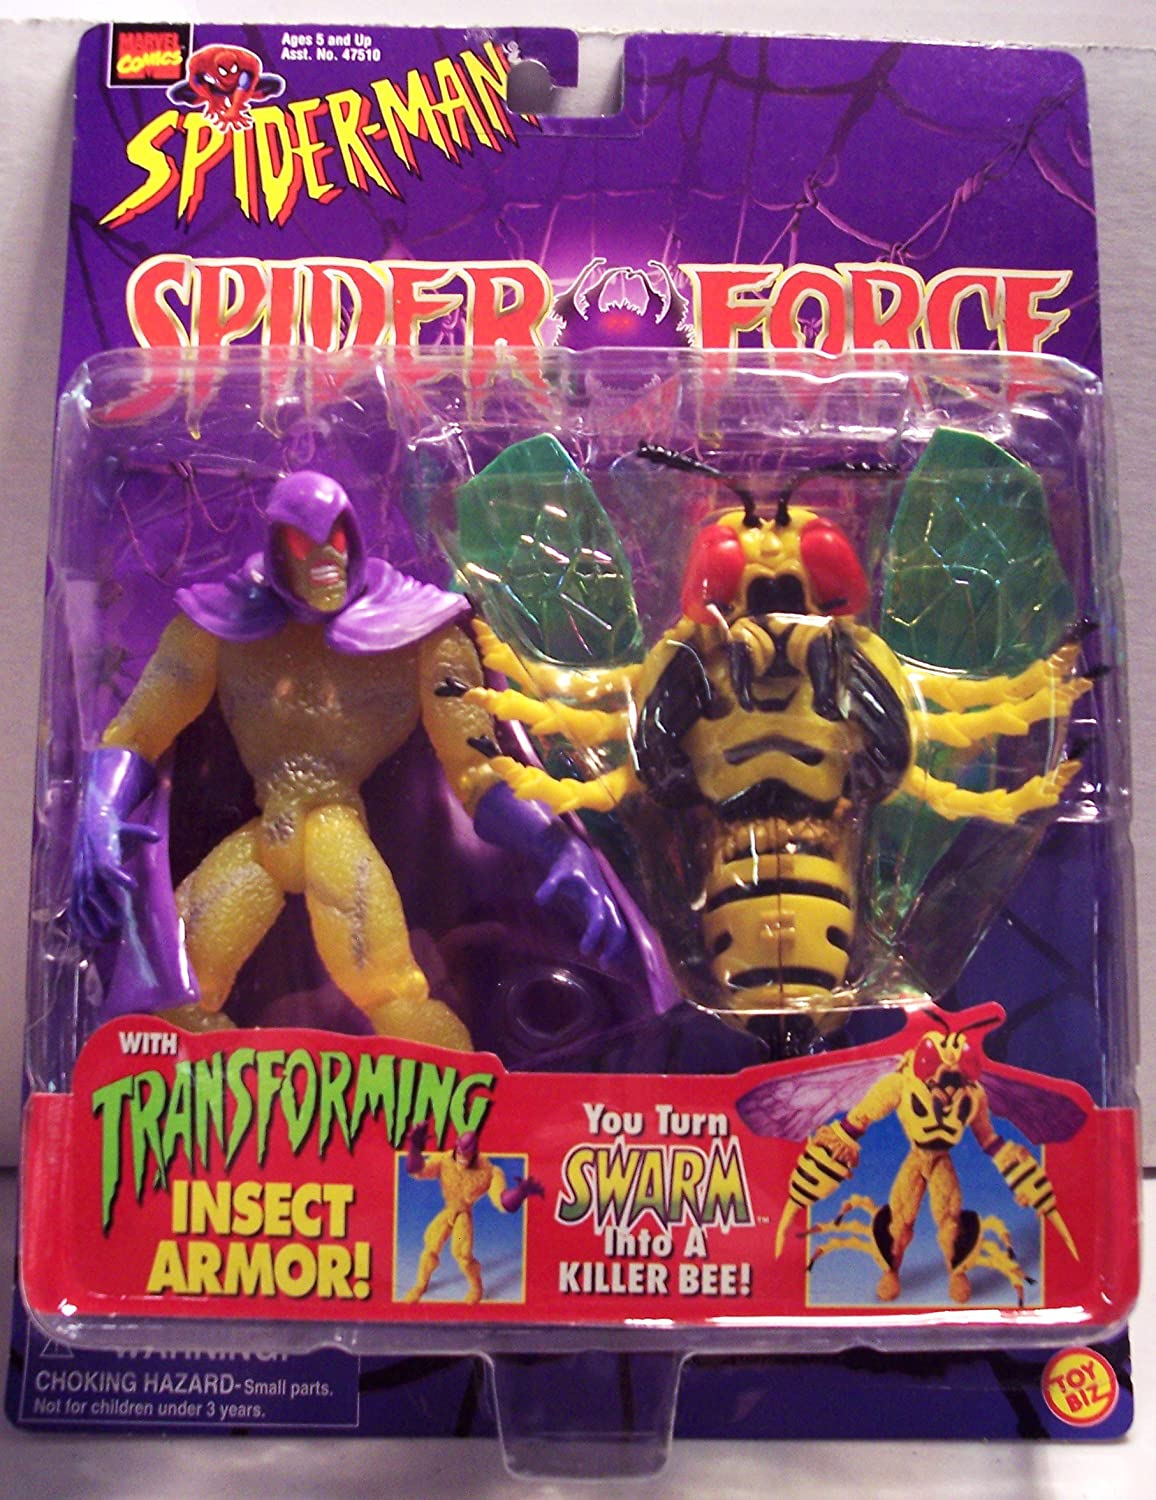 ToyBiz Spider-Man Spider Force Swarm with Transforming Insect Armor Action Figure